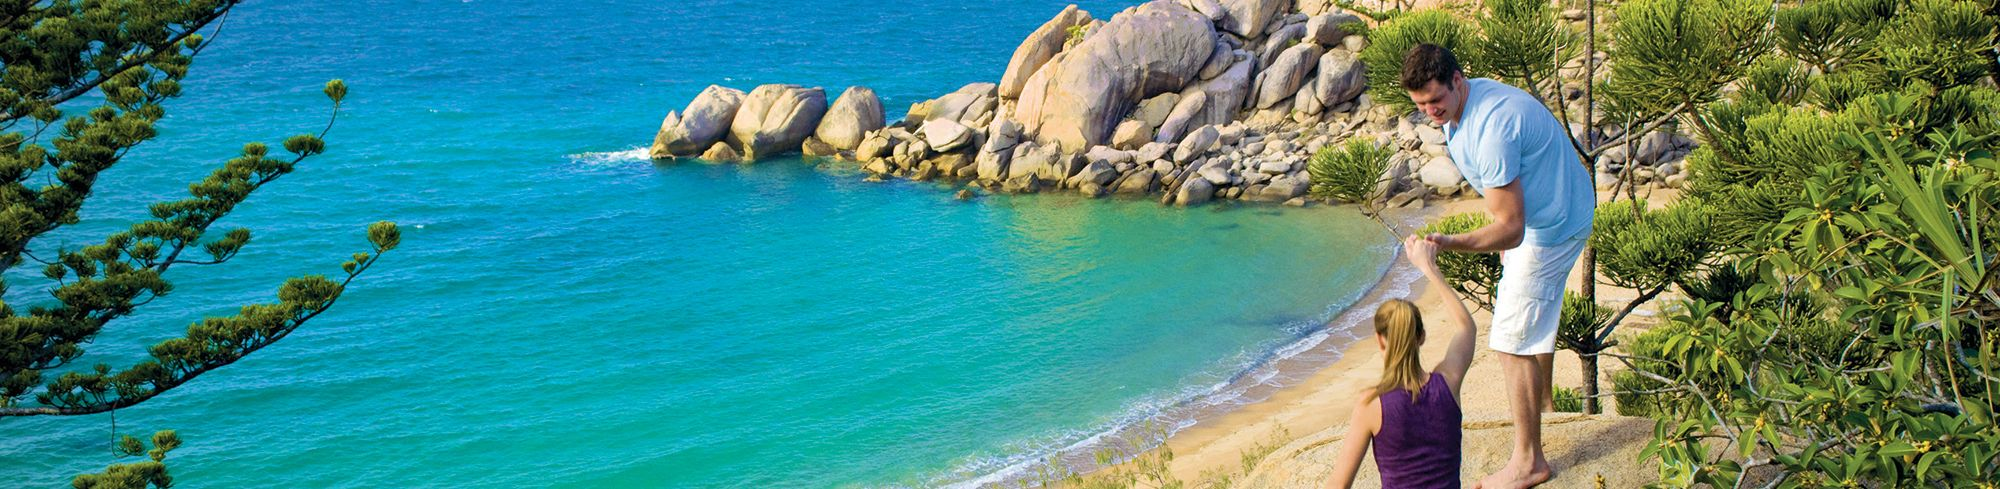 Magnetic-Island-Townsville-North-Queensland